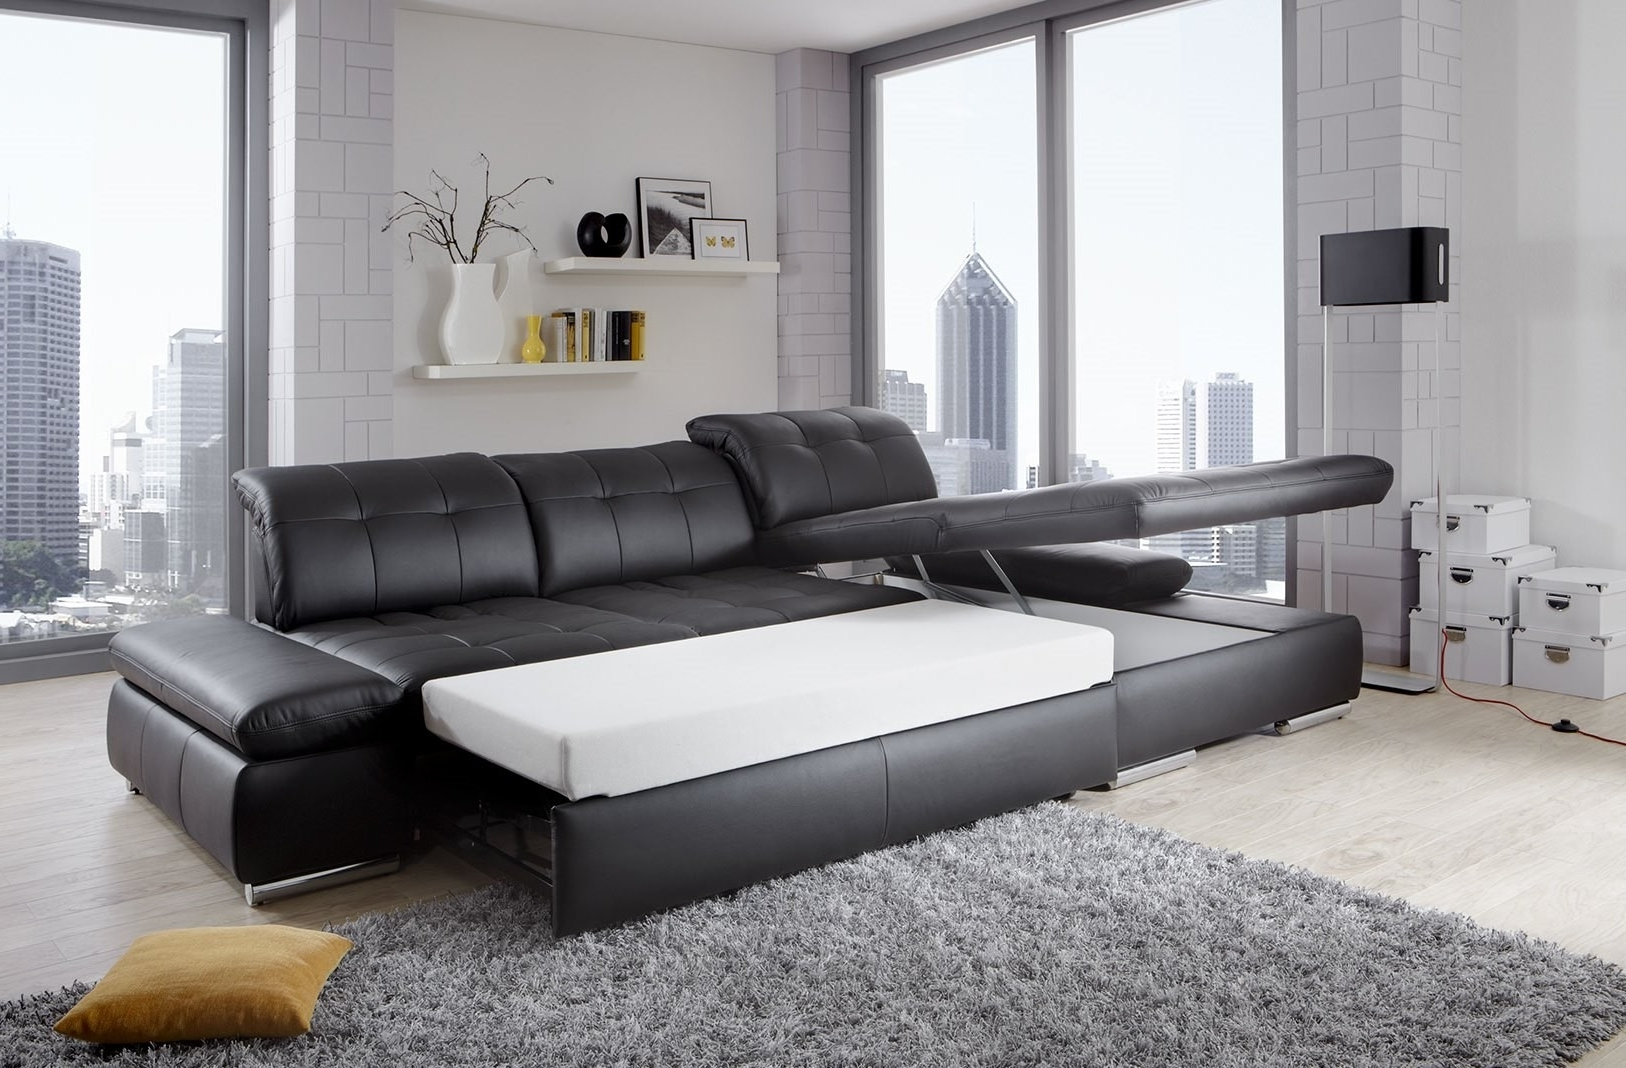 Latest Alpine Sectional Sofa In Black Leather Left Chaise Inside Trinidad And Tobago Sectional Sofas (View 3 of 15)